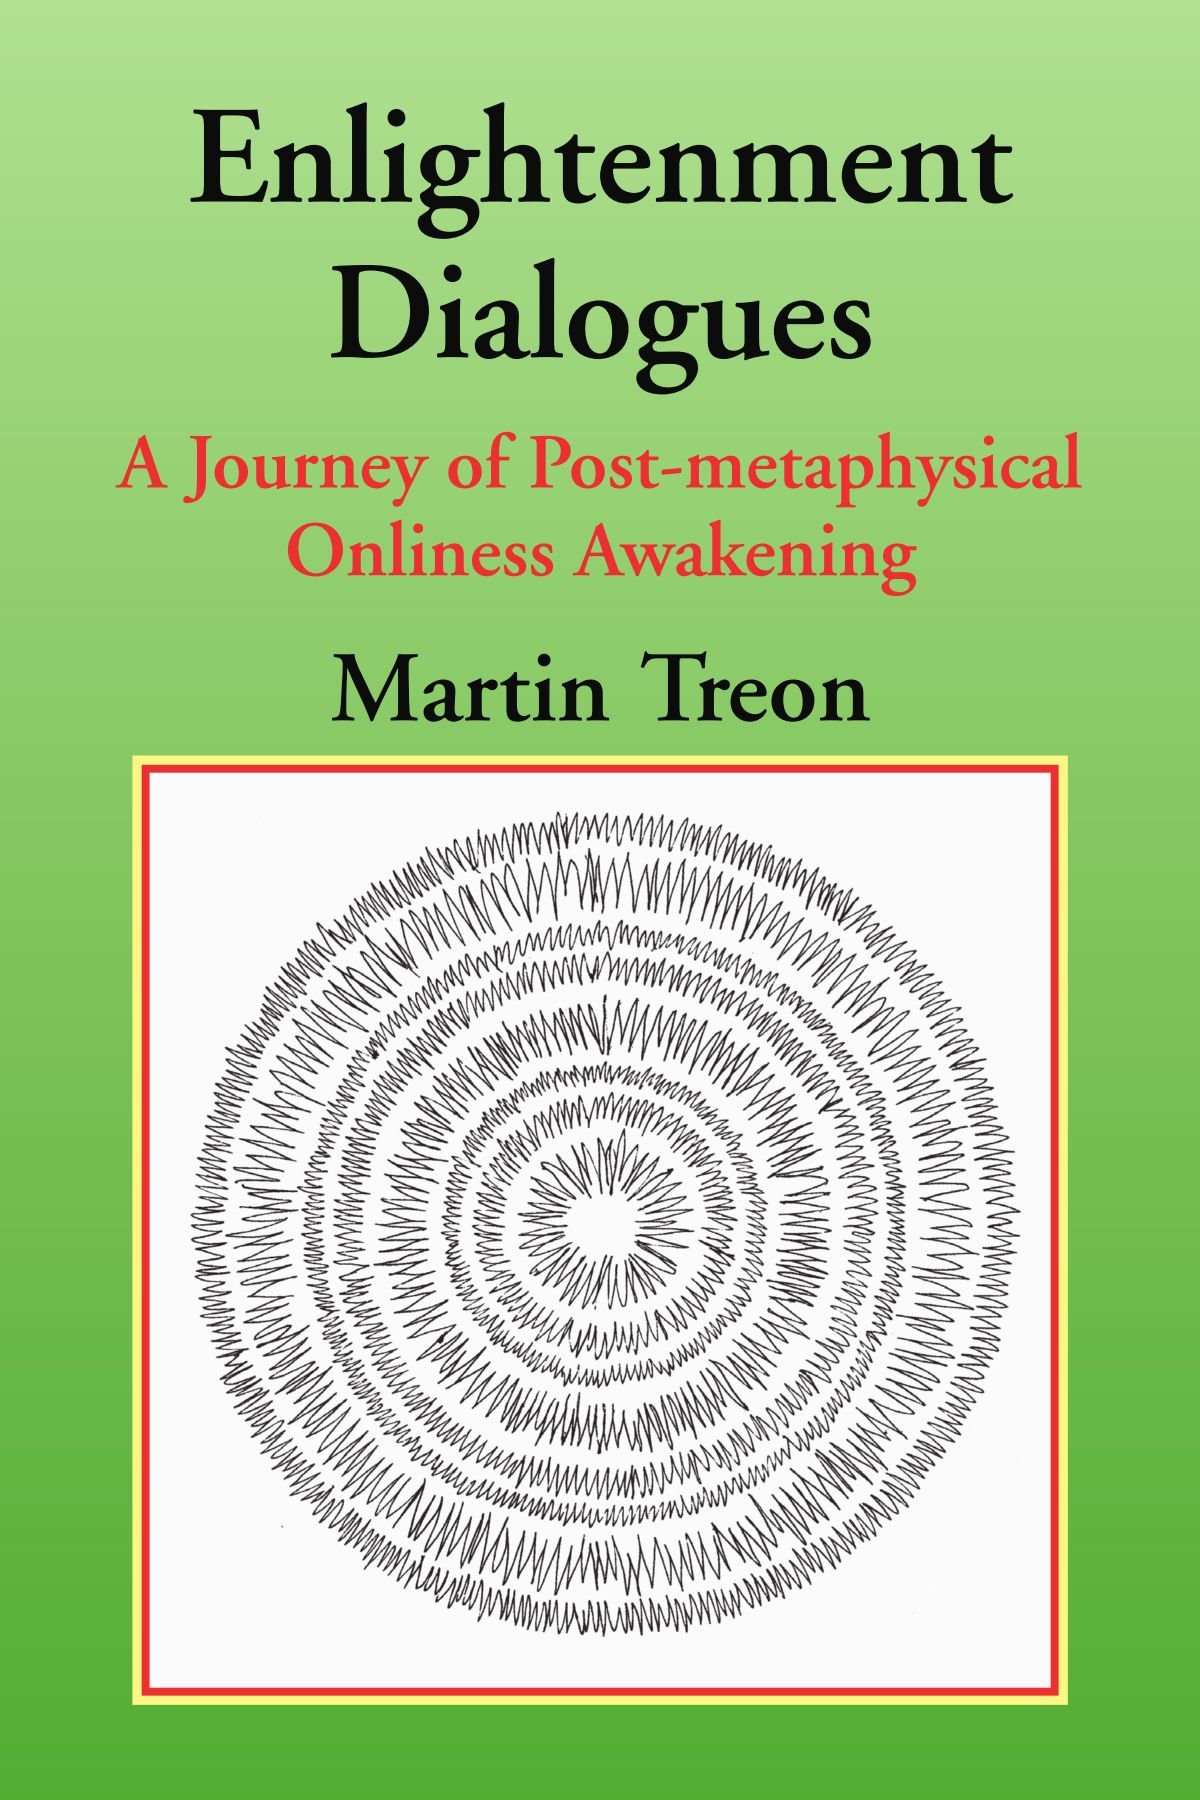 Enlightenment Dialogues: A Journey of Post-metaphysical Onliness Awakening ebook